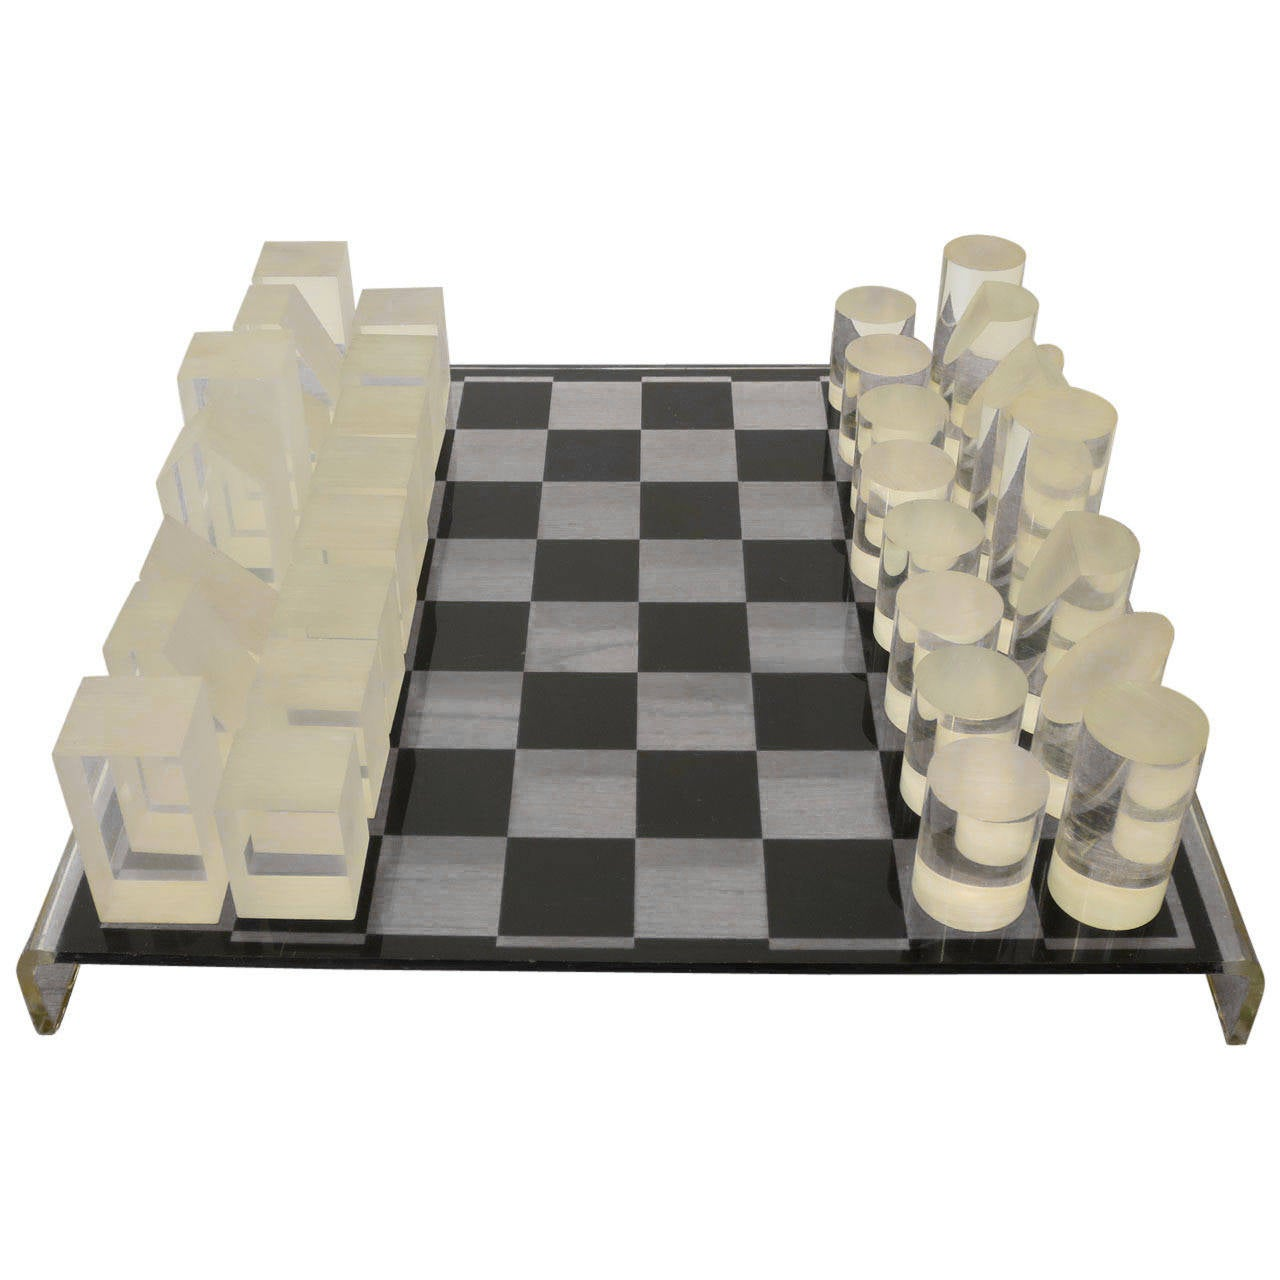 1970s Modern Home Architecture: 1970s Modern Lucite Chess Set At 1stdibs